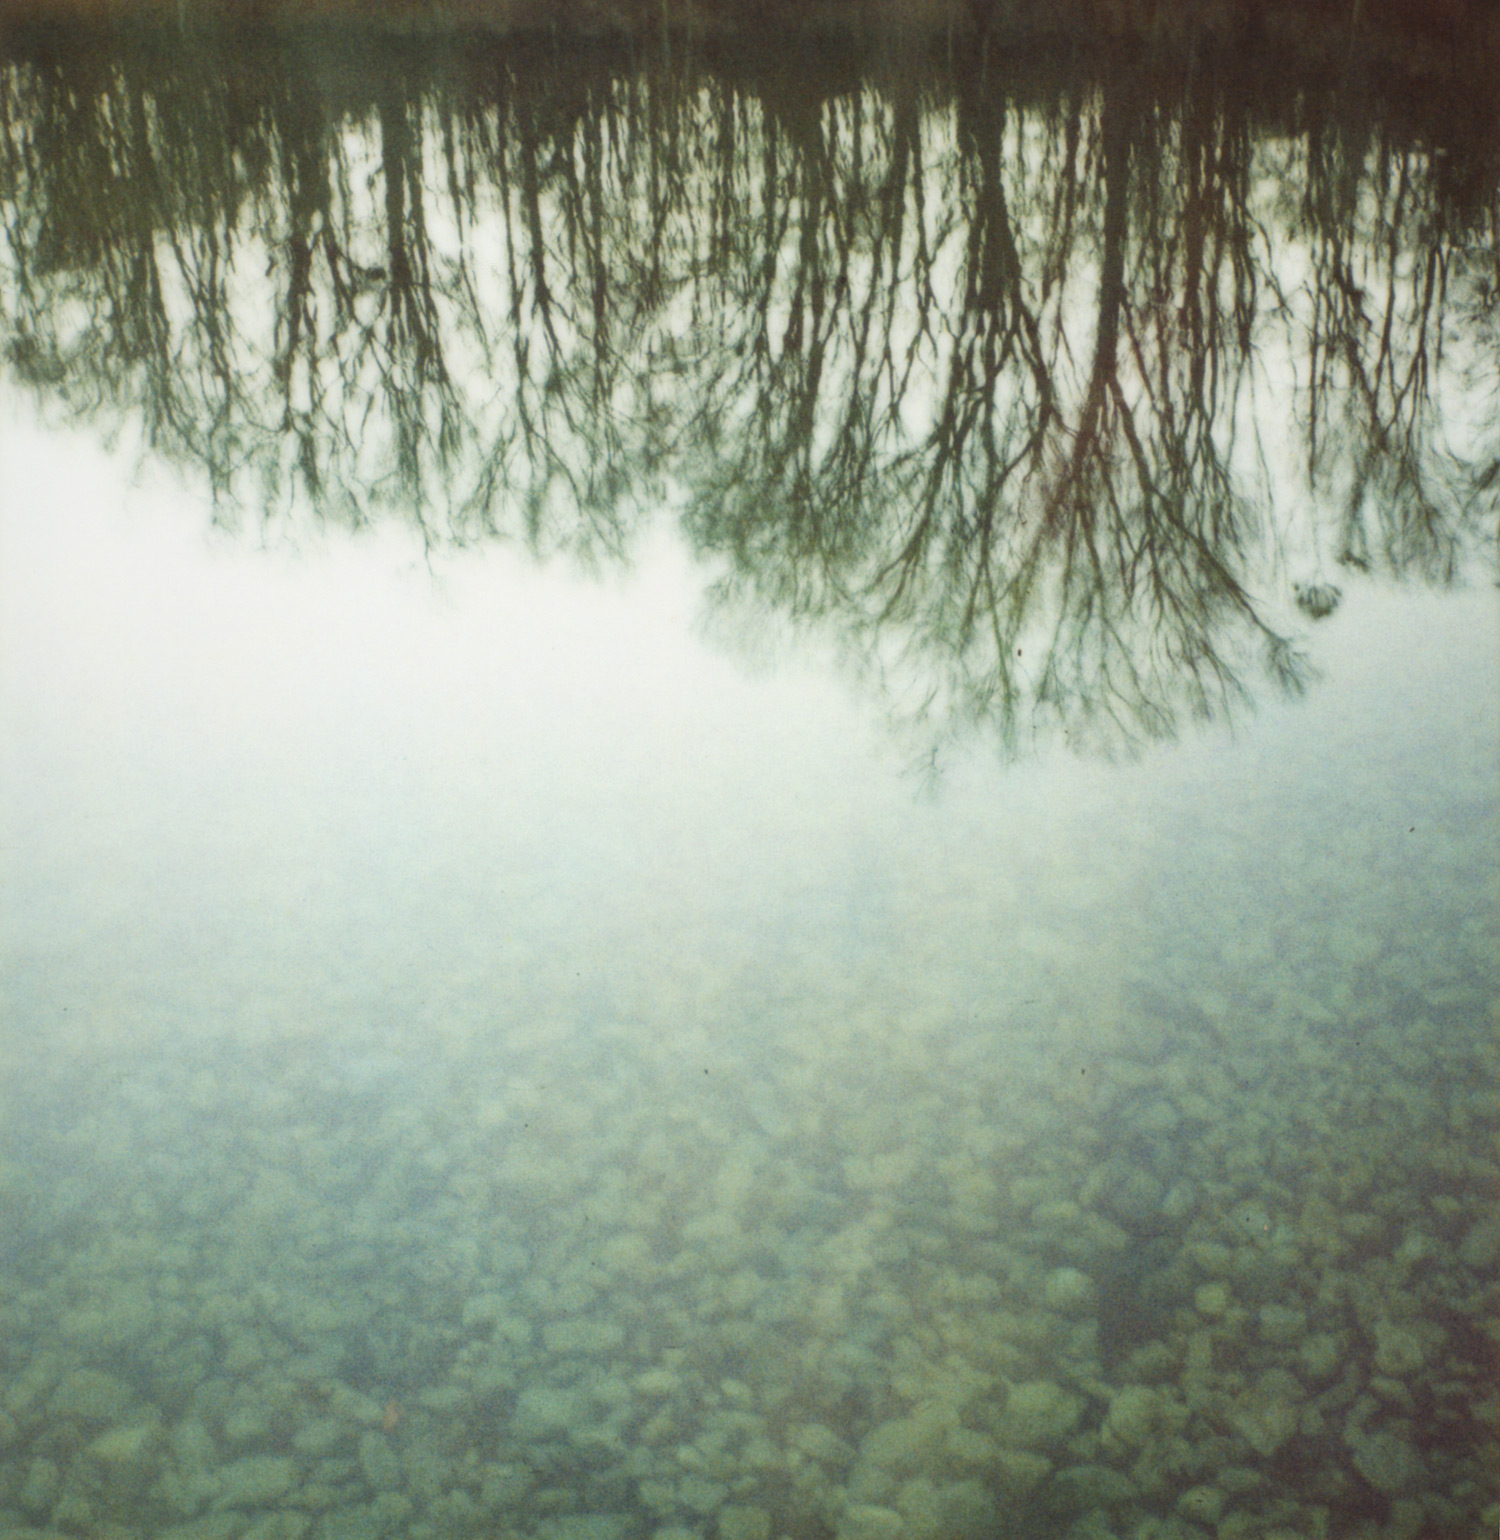 pola_tree_rock_reflection_1500px.jpg